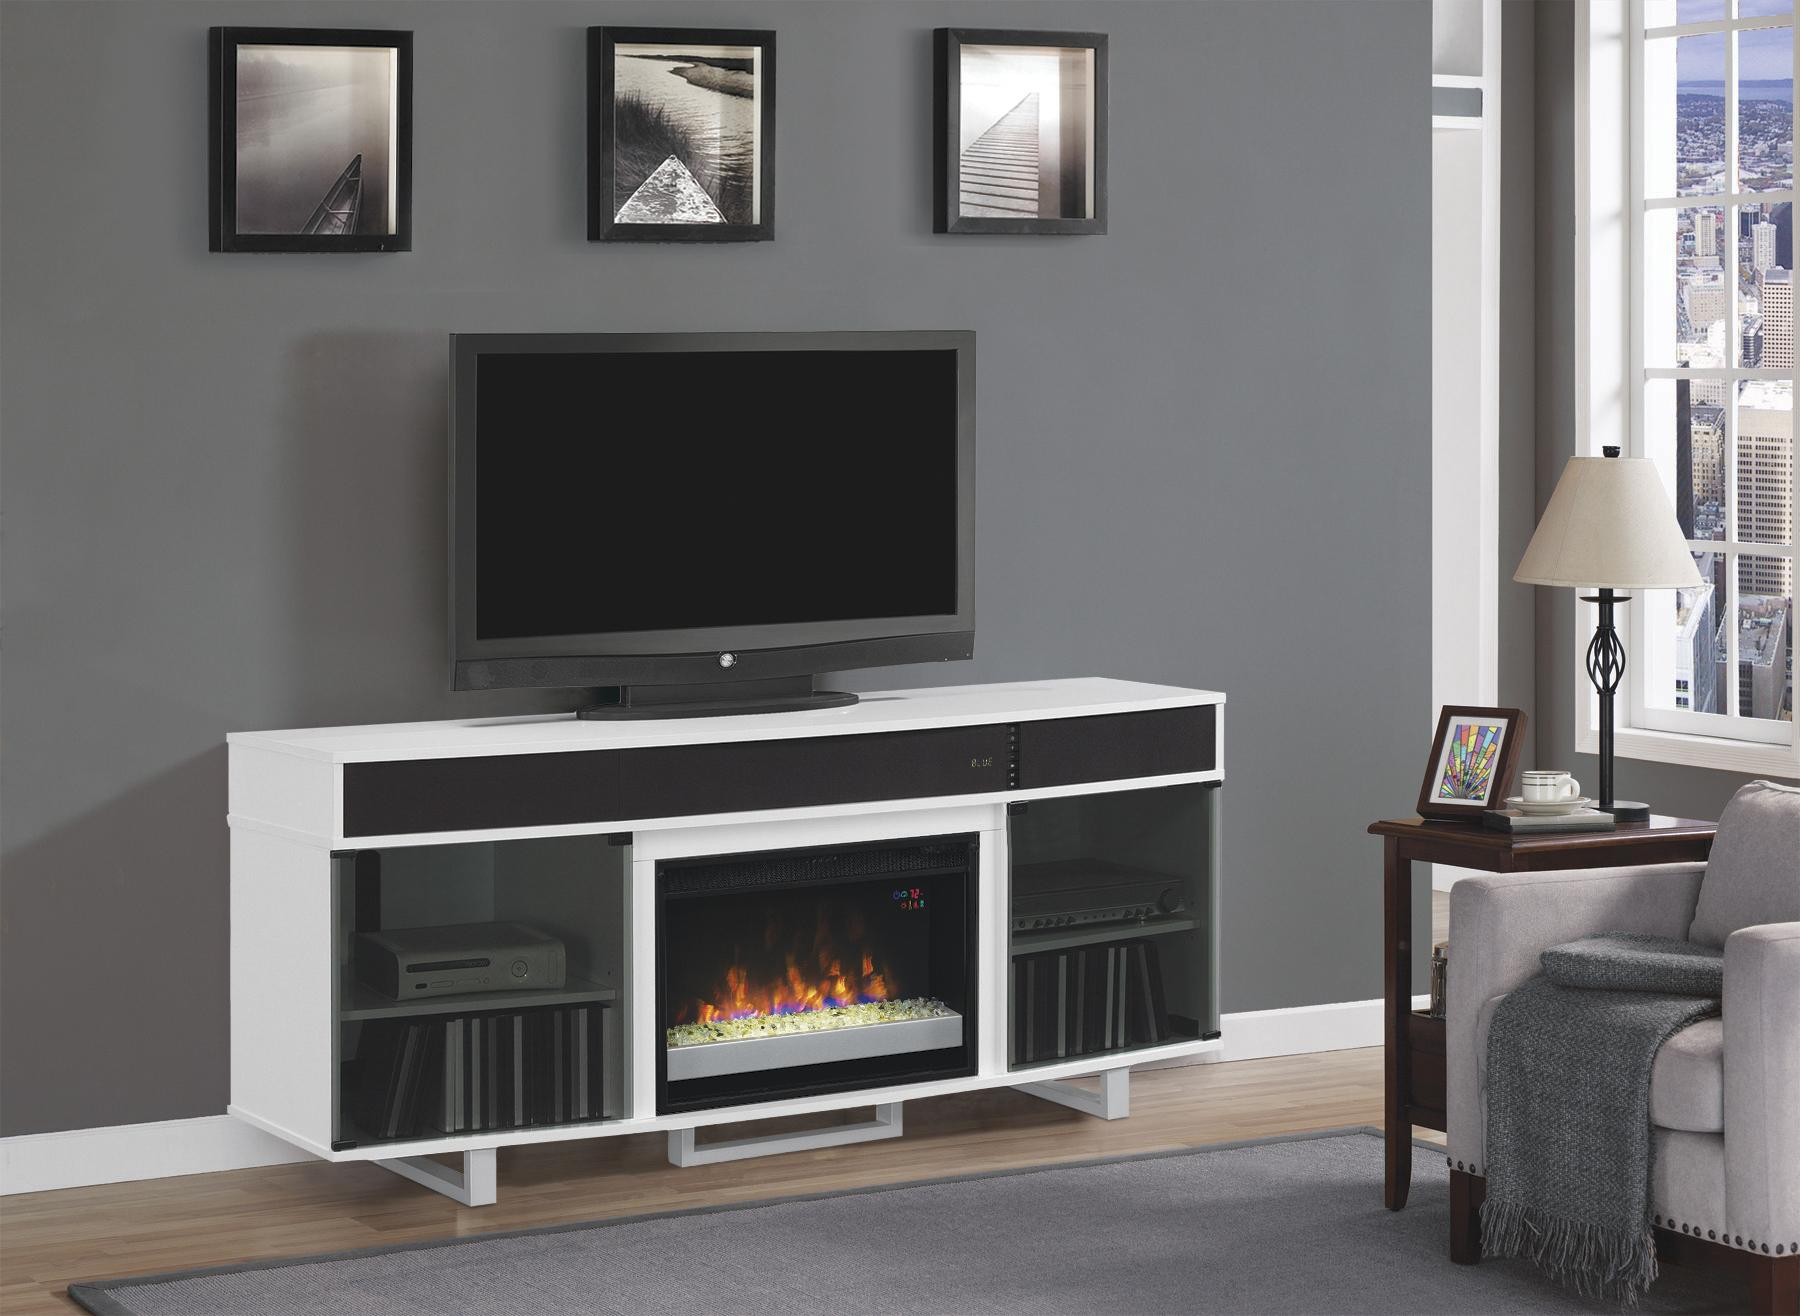 Witching Insert Fireplaces Value City Furniture Along With Merrick Regarding Willa 80 Inch Tv Stands (Photo 22 of 30)